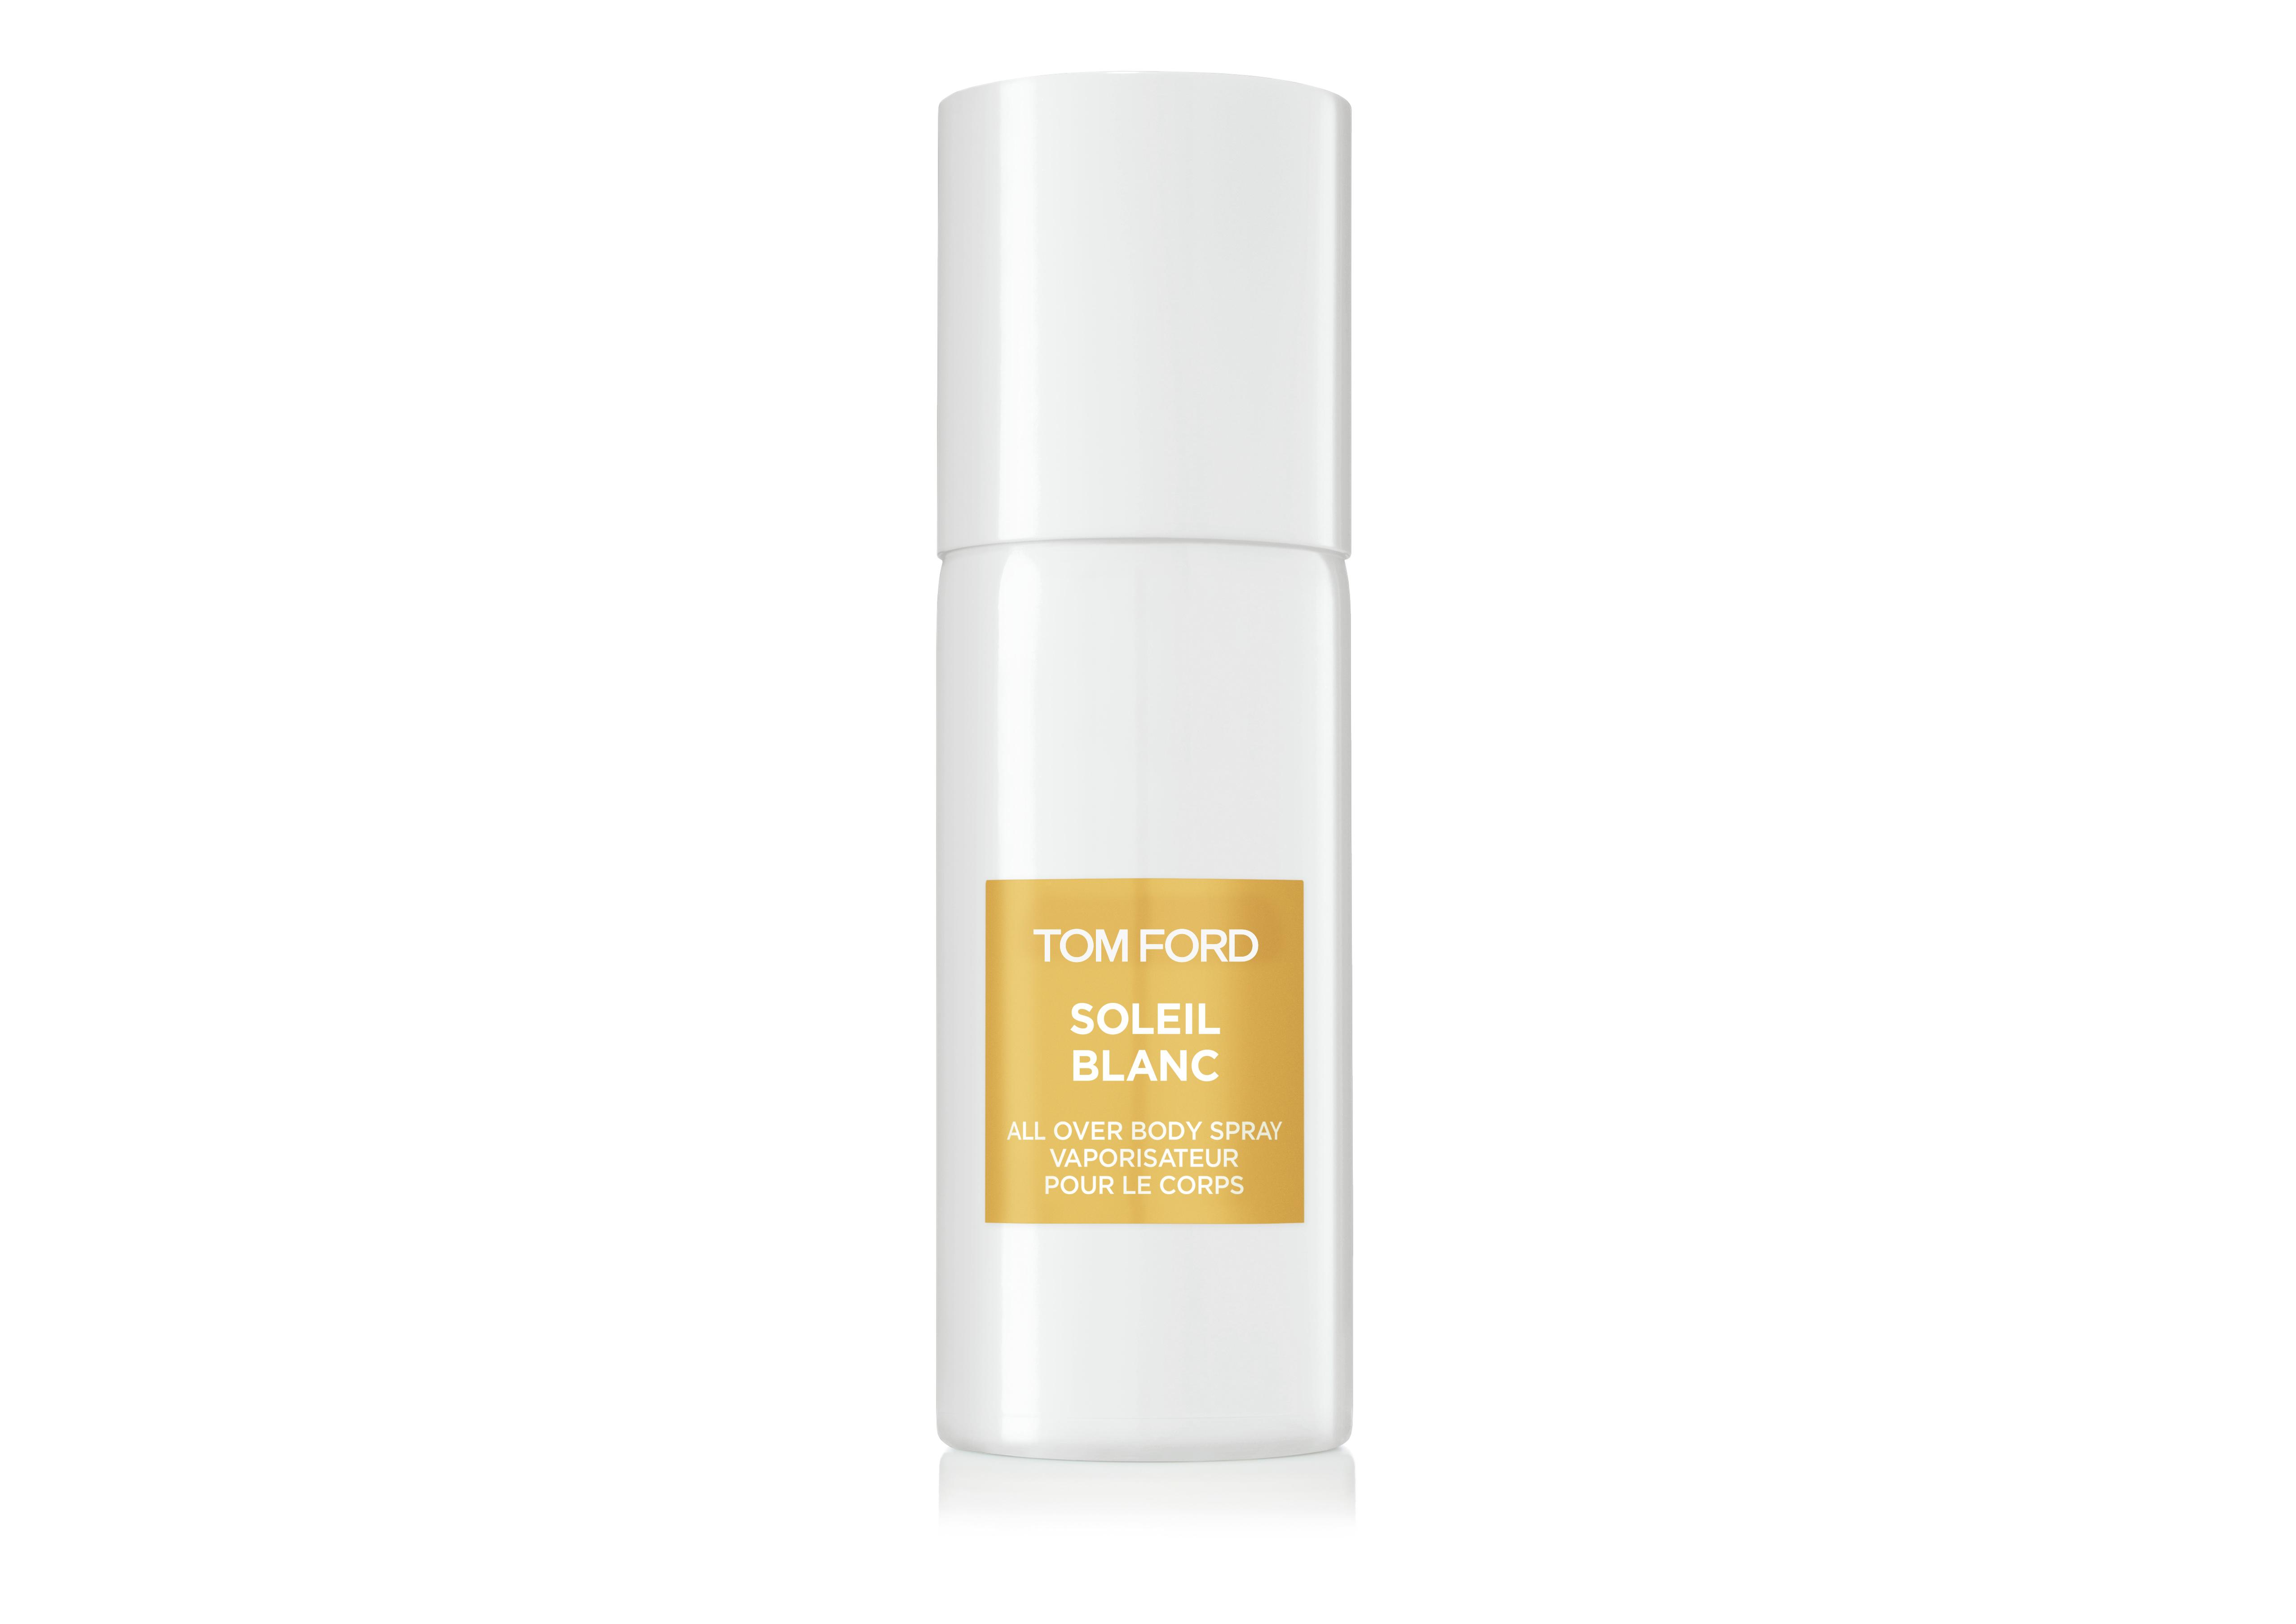 SOLEIL BLANC ALL OVER BODY SPRAY A thumbnail